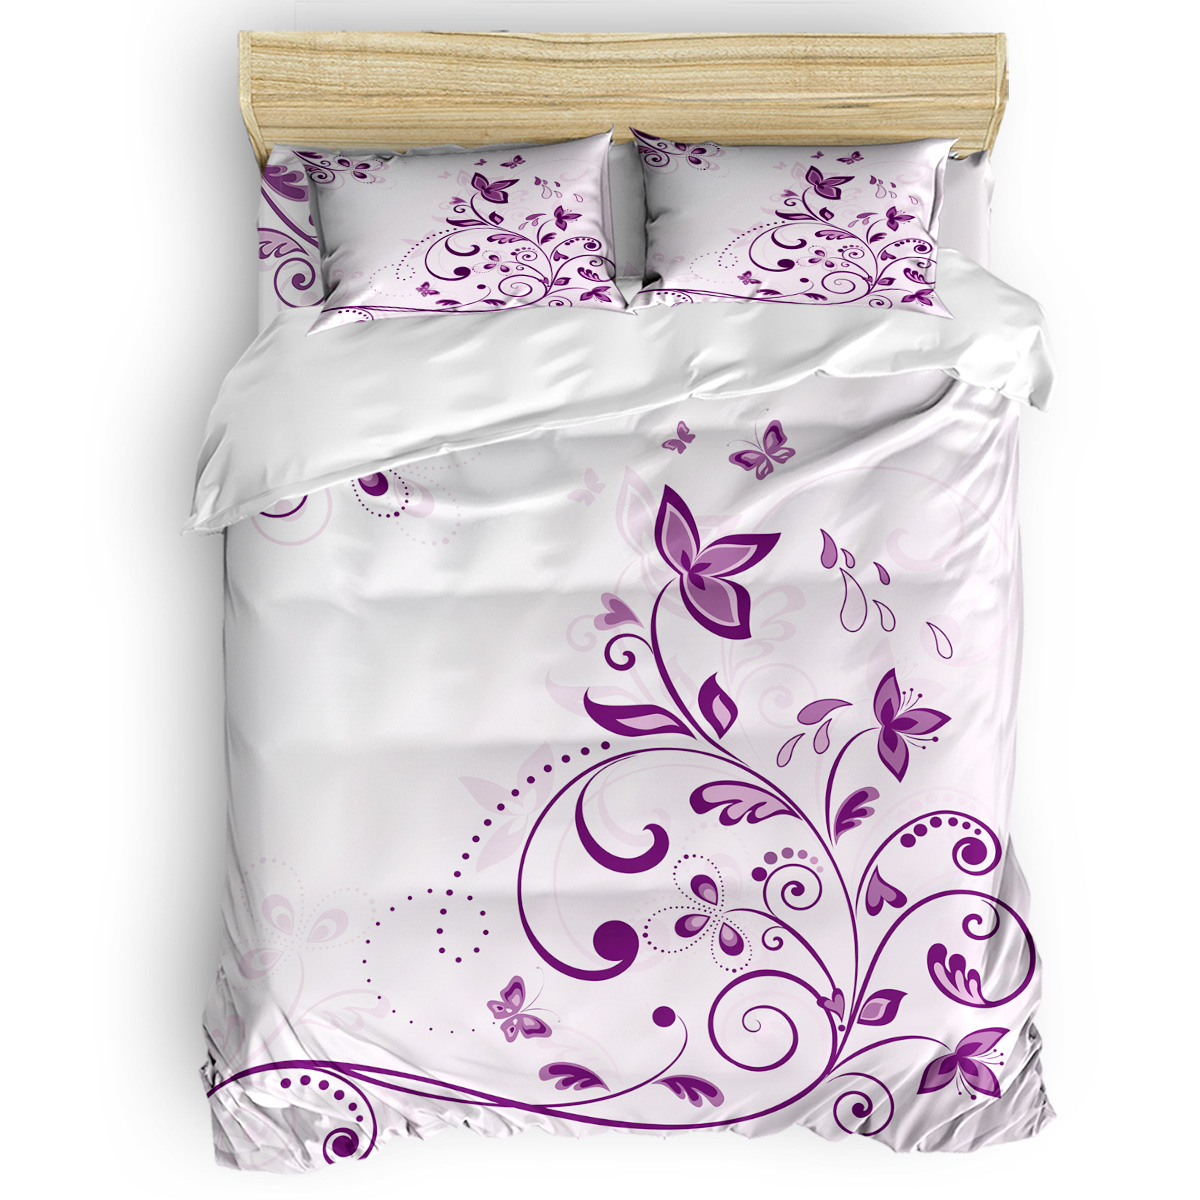 Violet Butterfly Abraham Birthday Duvet Cover Sets Comforter Sets Memorial Day Microfiber Toddler Daybed Womens Bedding Sets Aliexpress